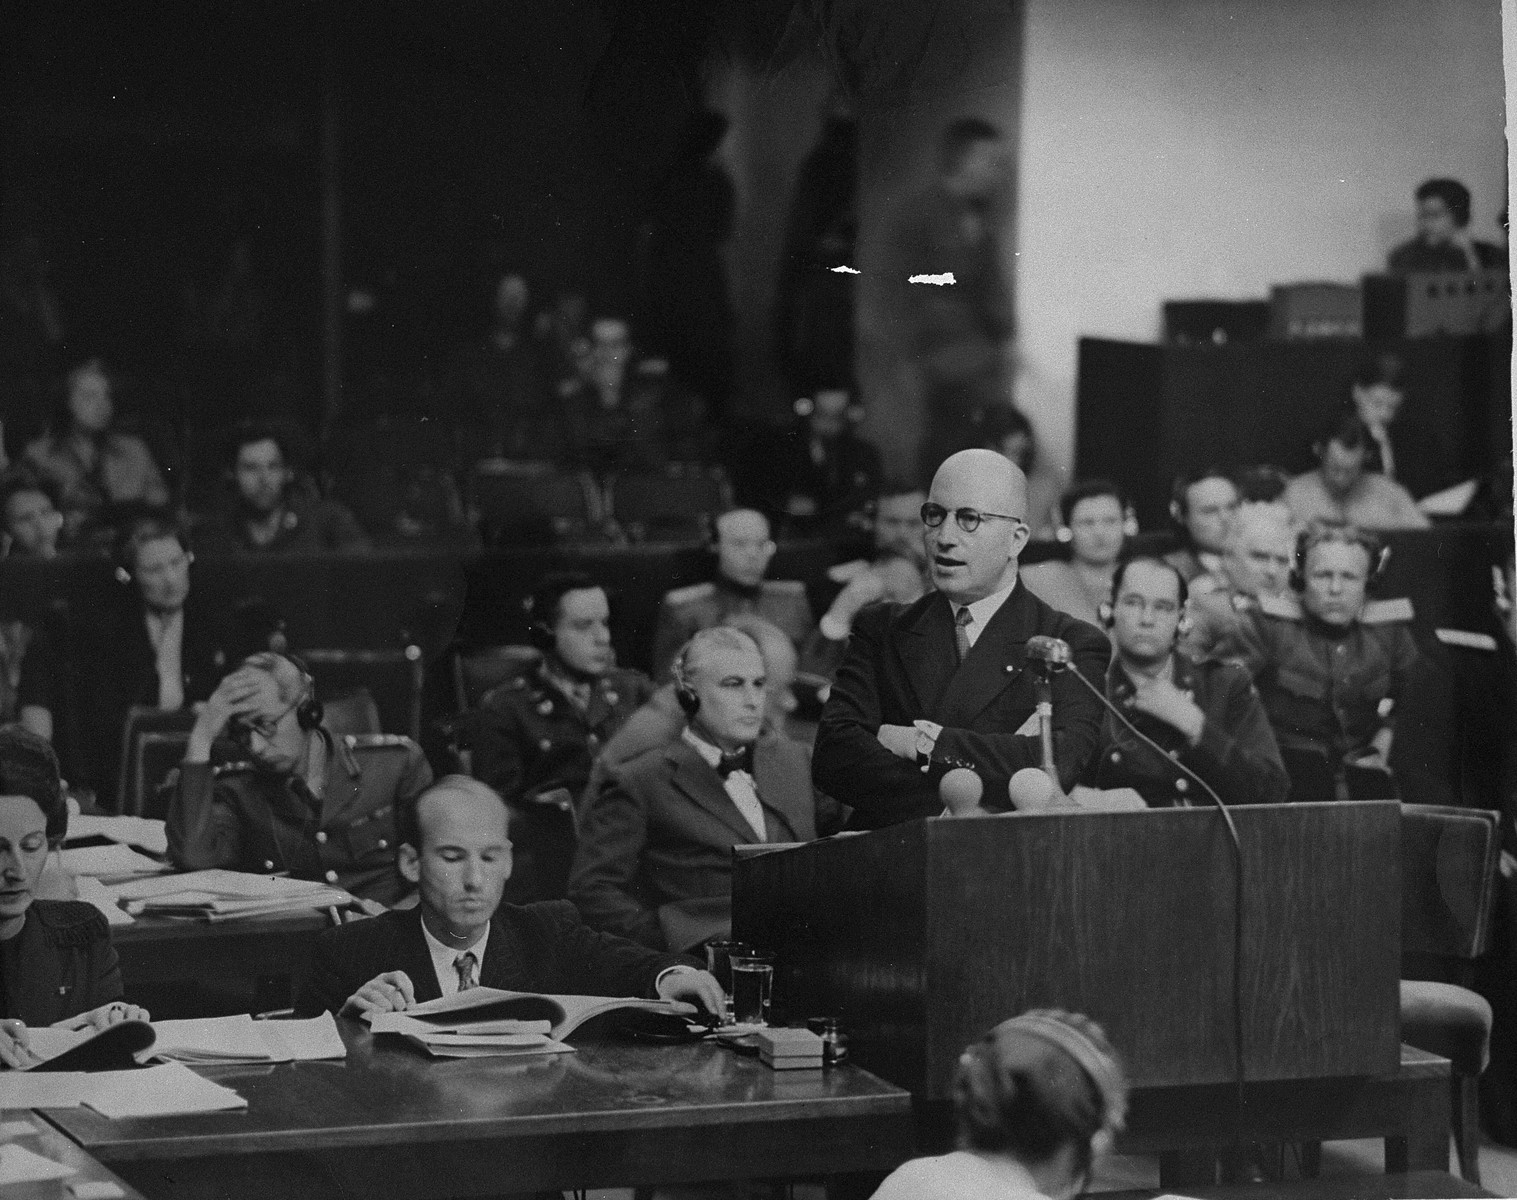 Deputy Chief Prosecutor Charles Dubost presents the French prosecution's final statement at the International Military Tribunal trial of war criminals at Nuremberg.